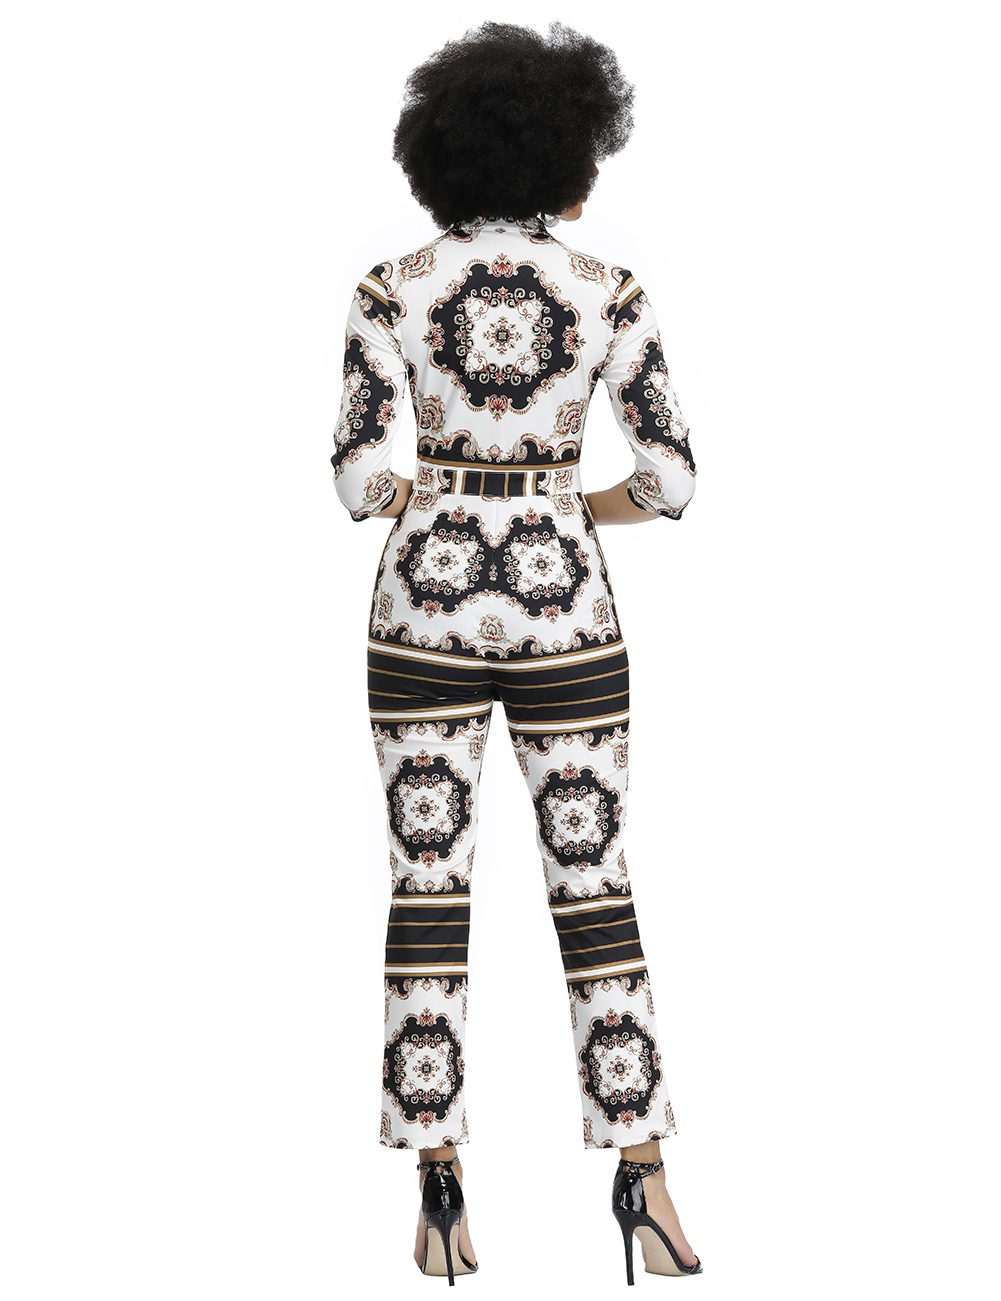 //cdn.affectcloud.com/hexinfashion/upload/imgs/Dress/Jumpsuit_Romper/VZ191111-BK1/VZ191111-BK1-201911055dc0da1a0597f.jpg